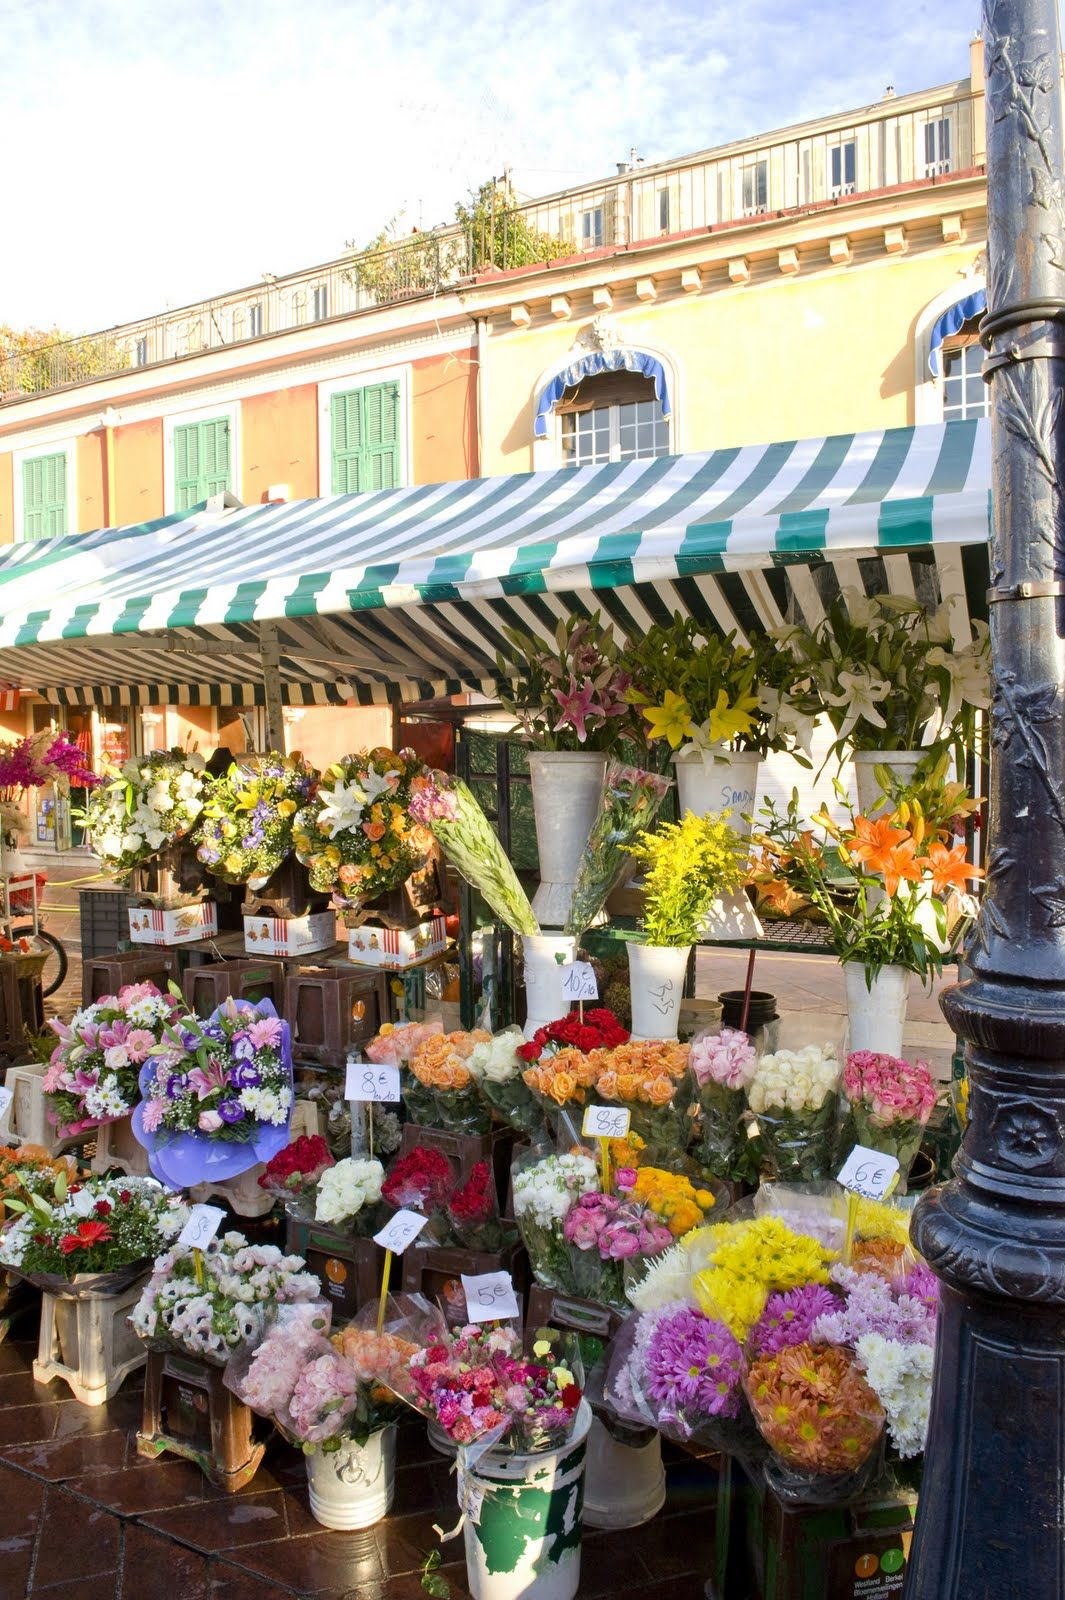 A Stall In The Marche Aux Fleurs Nice Taylor Would Love To Paint